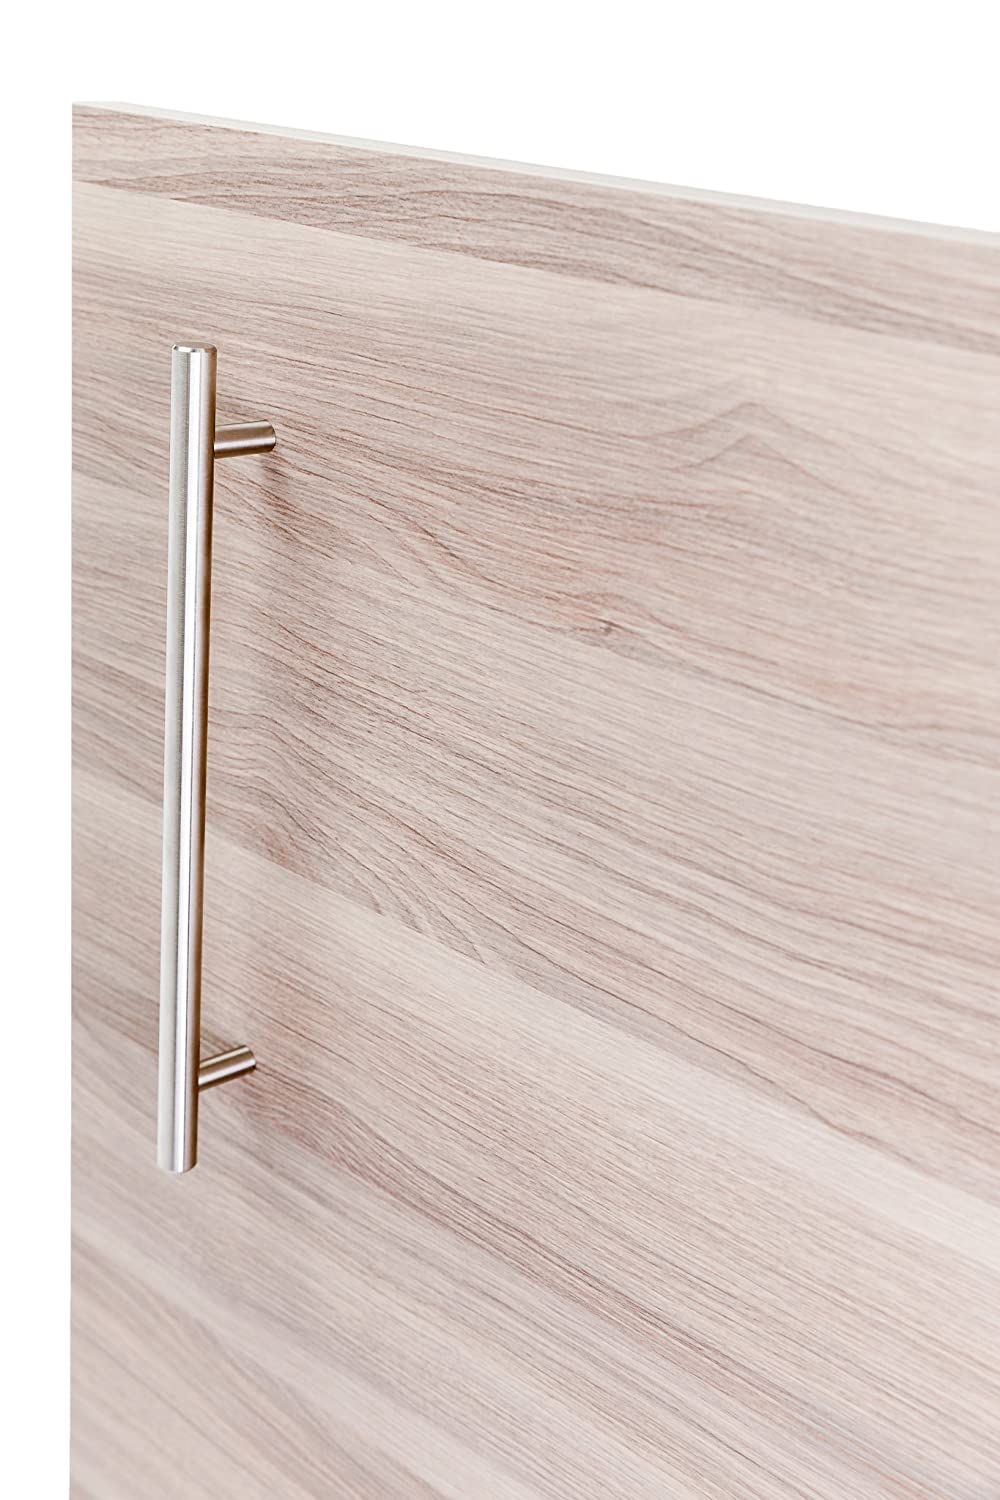 URBN.design MIA-H4XX-E4 12-1//2 Inch Cabinet Handle Pack of 1, 16 Inch Length, 12-1//2 Inch Hole-to-Hole 1//2 Inch Diameter Solid Stainless Steel Ultra Grade URBN Modern Euro THICK SOLID Bar Pull